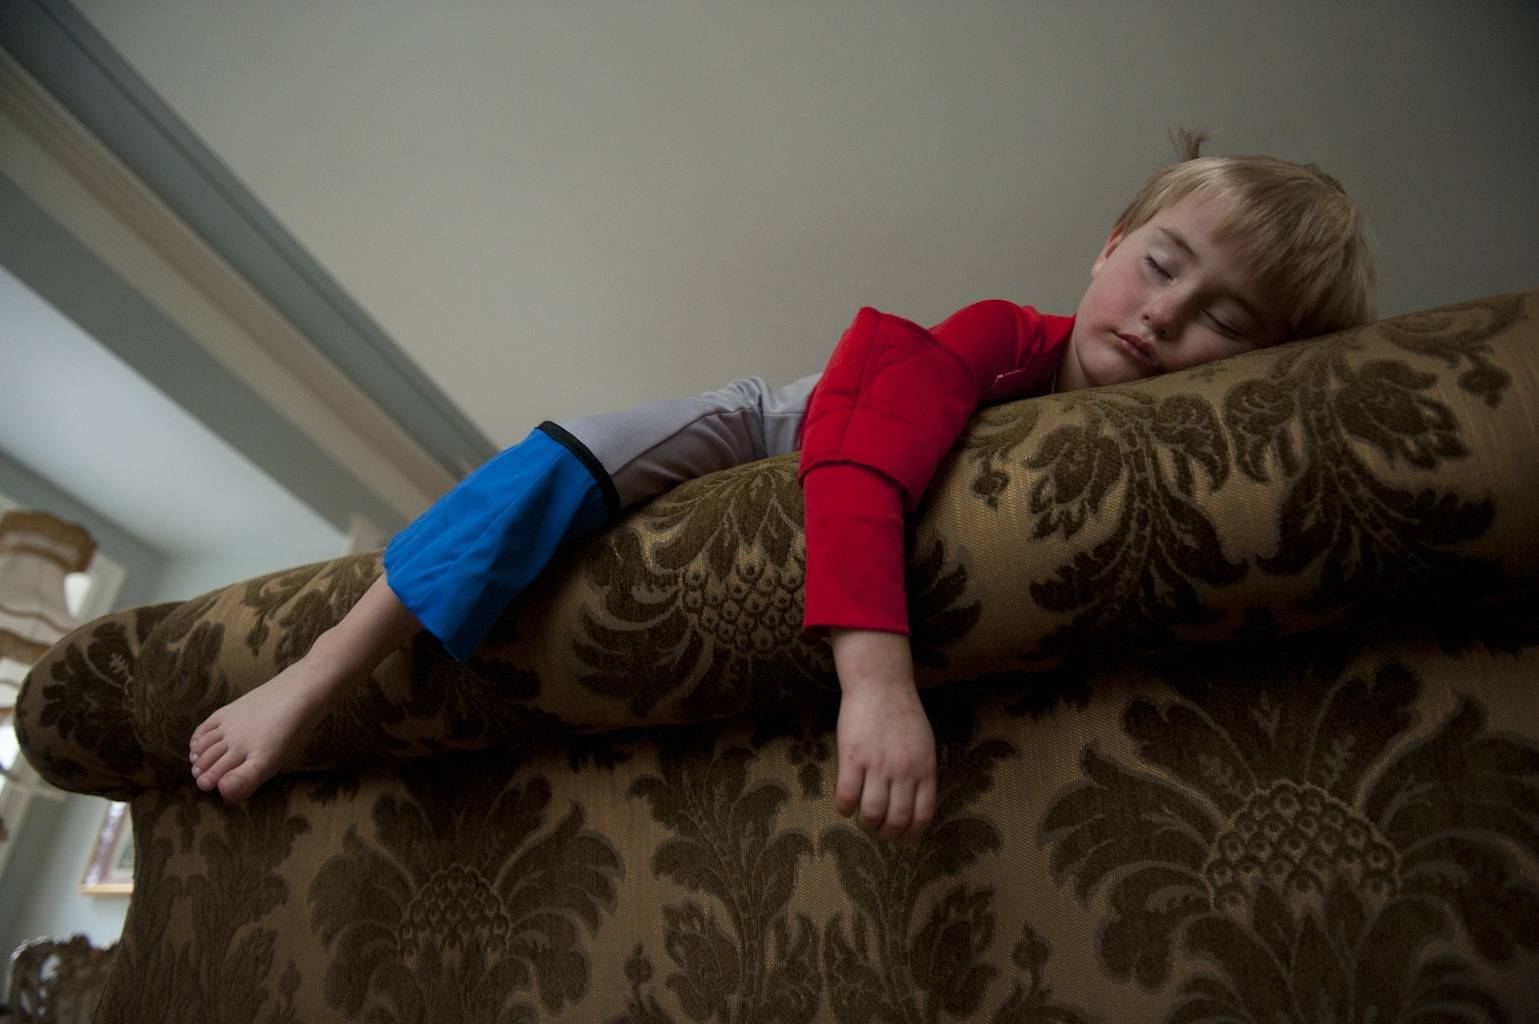 Photo: Being a super hero is exhausting for a little boy.